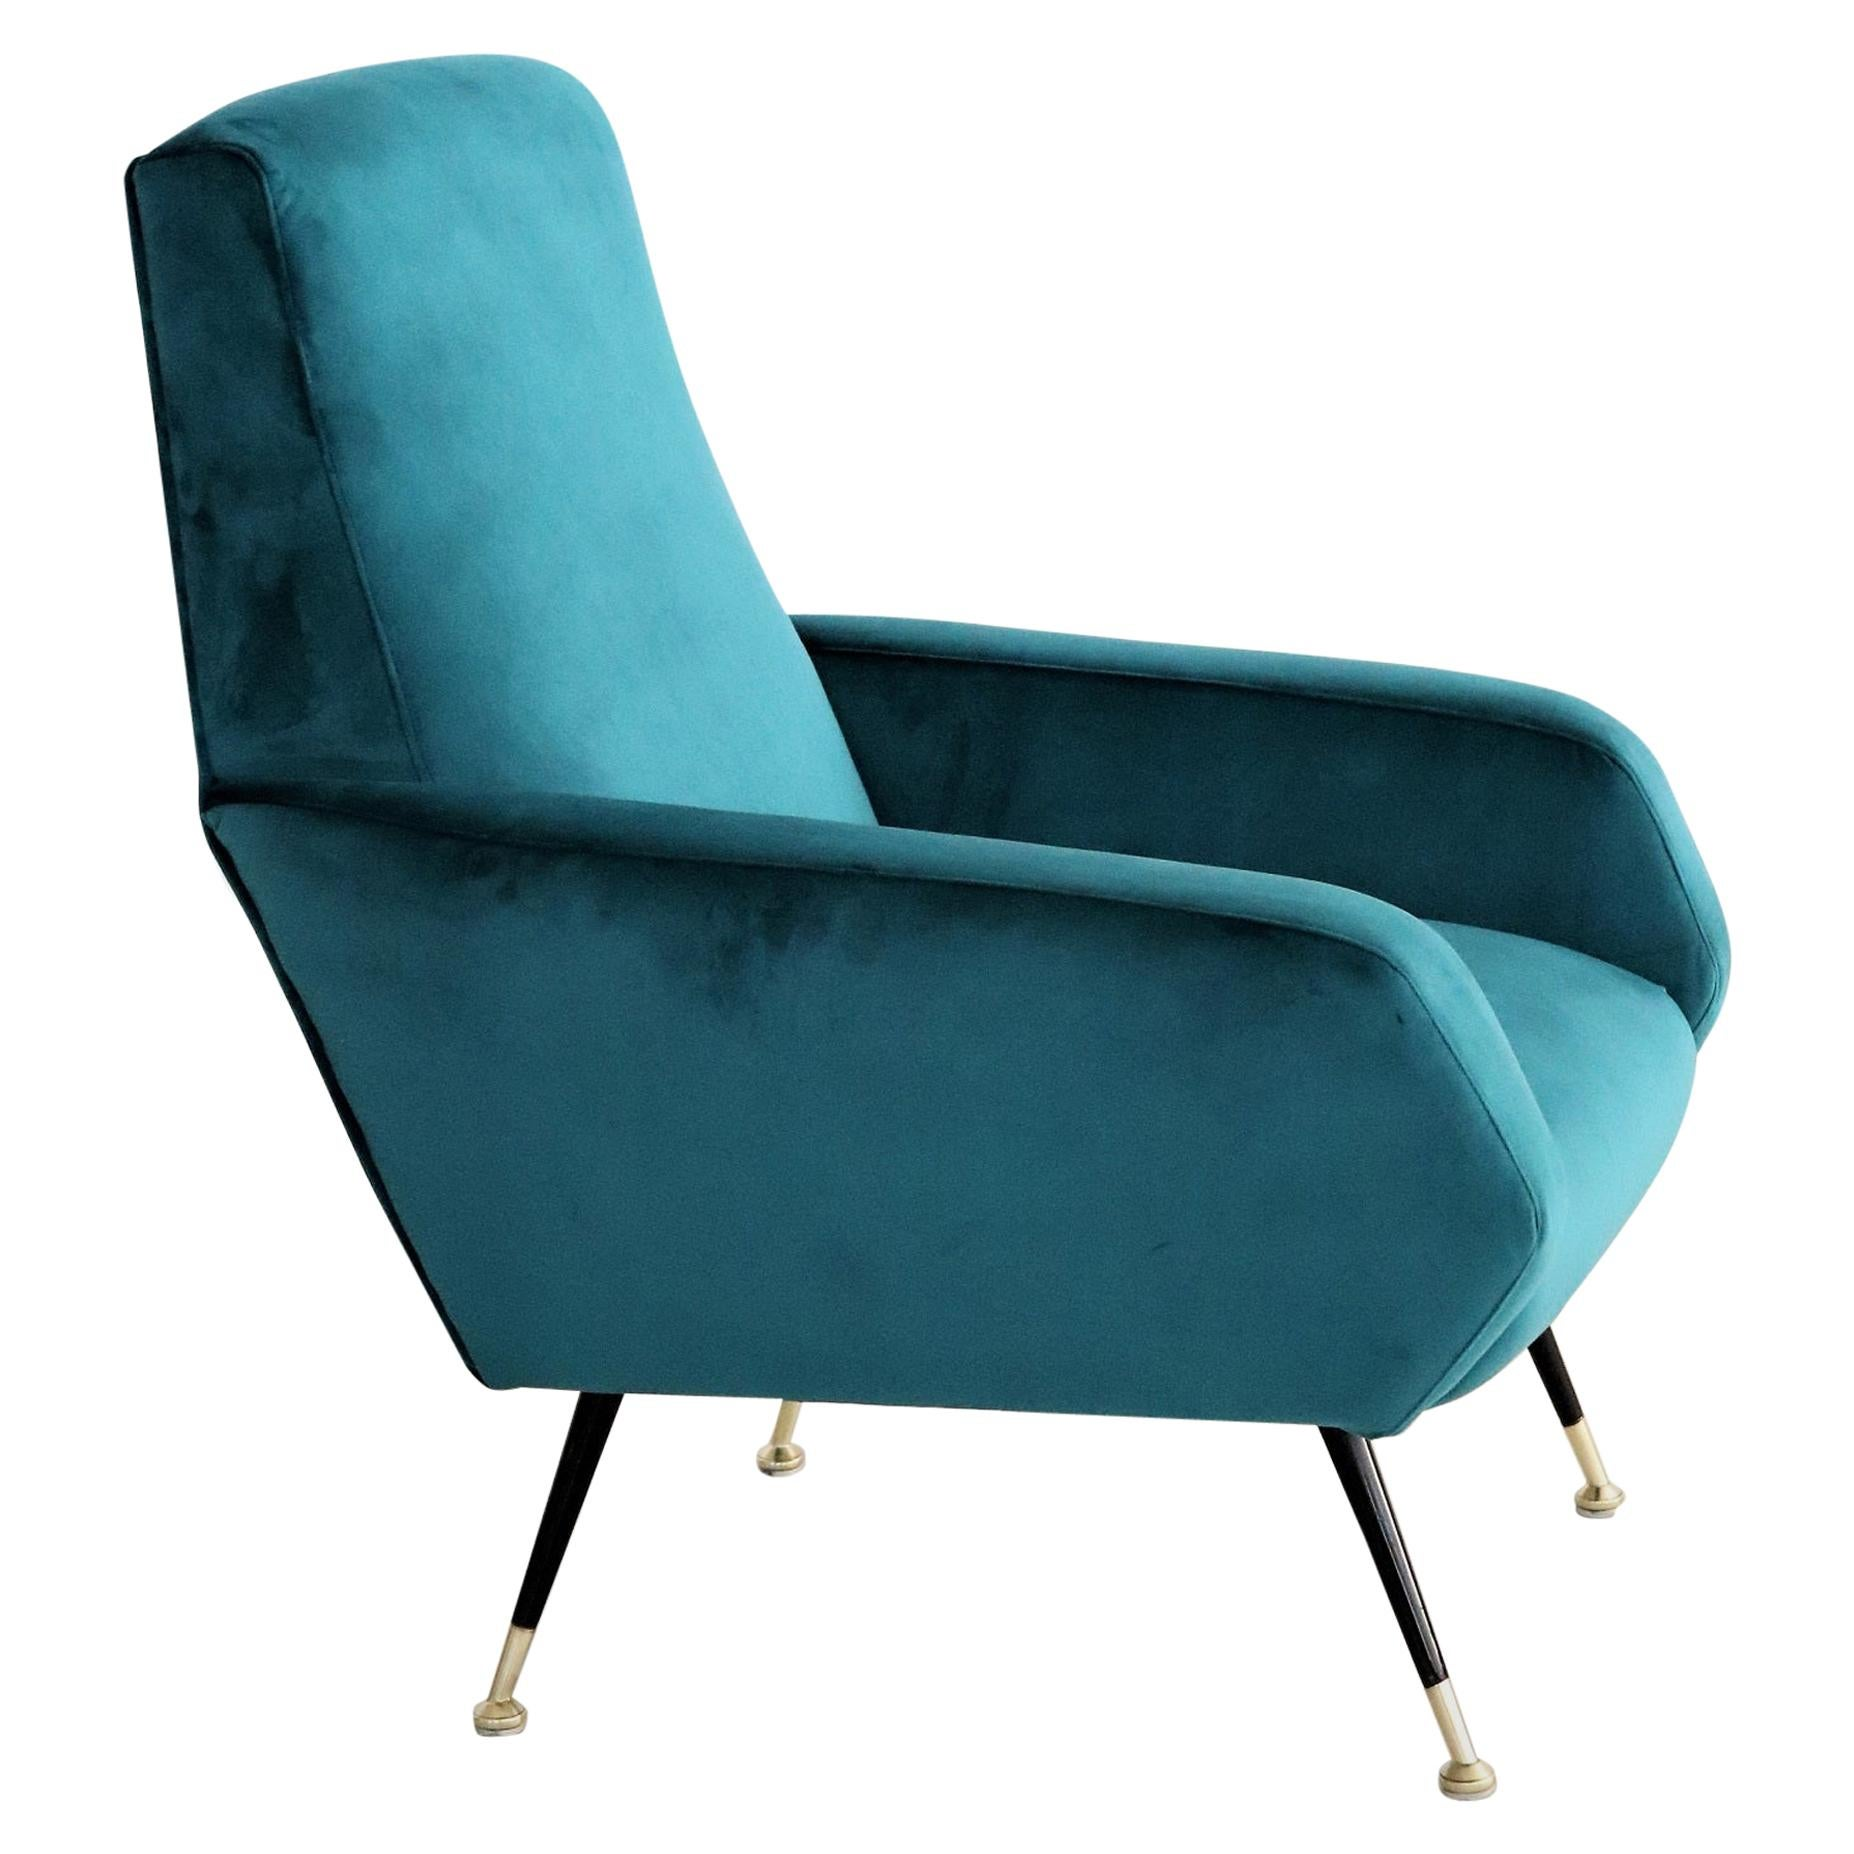 Italian Midcentury Armchair in Petrol Velvet and Brass Feet, 1950s